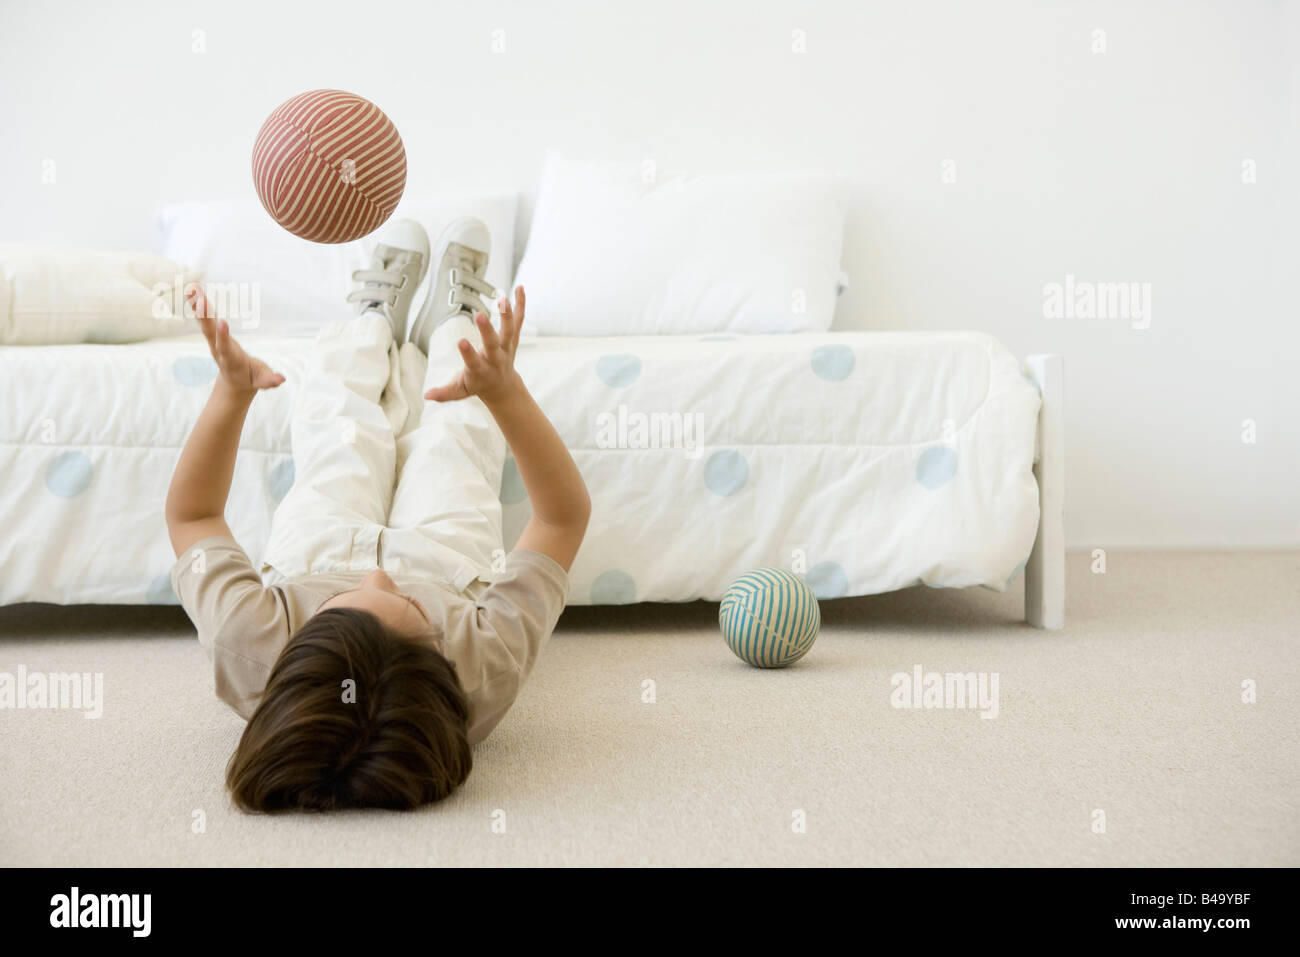 Boy lying on the ground in bedroom, throwing ball in the air - Stock Image